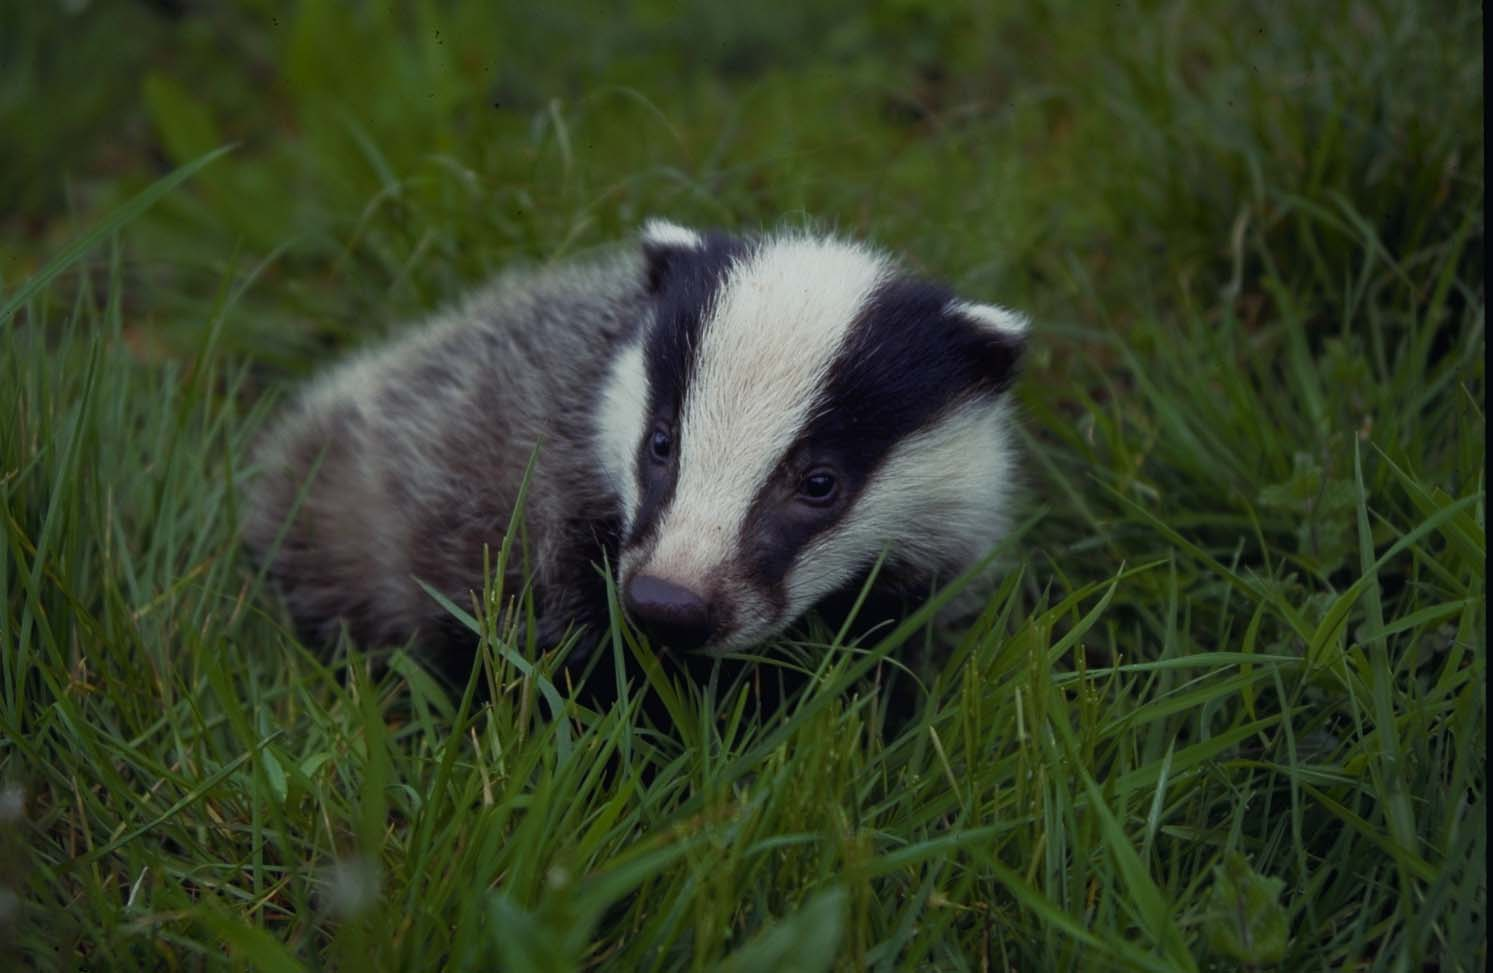 young badger cub in Collte woods